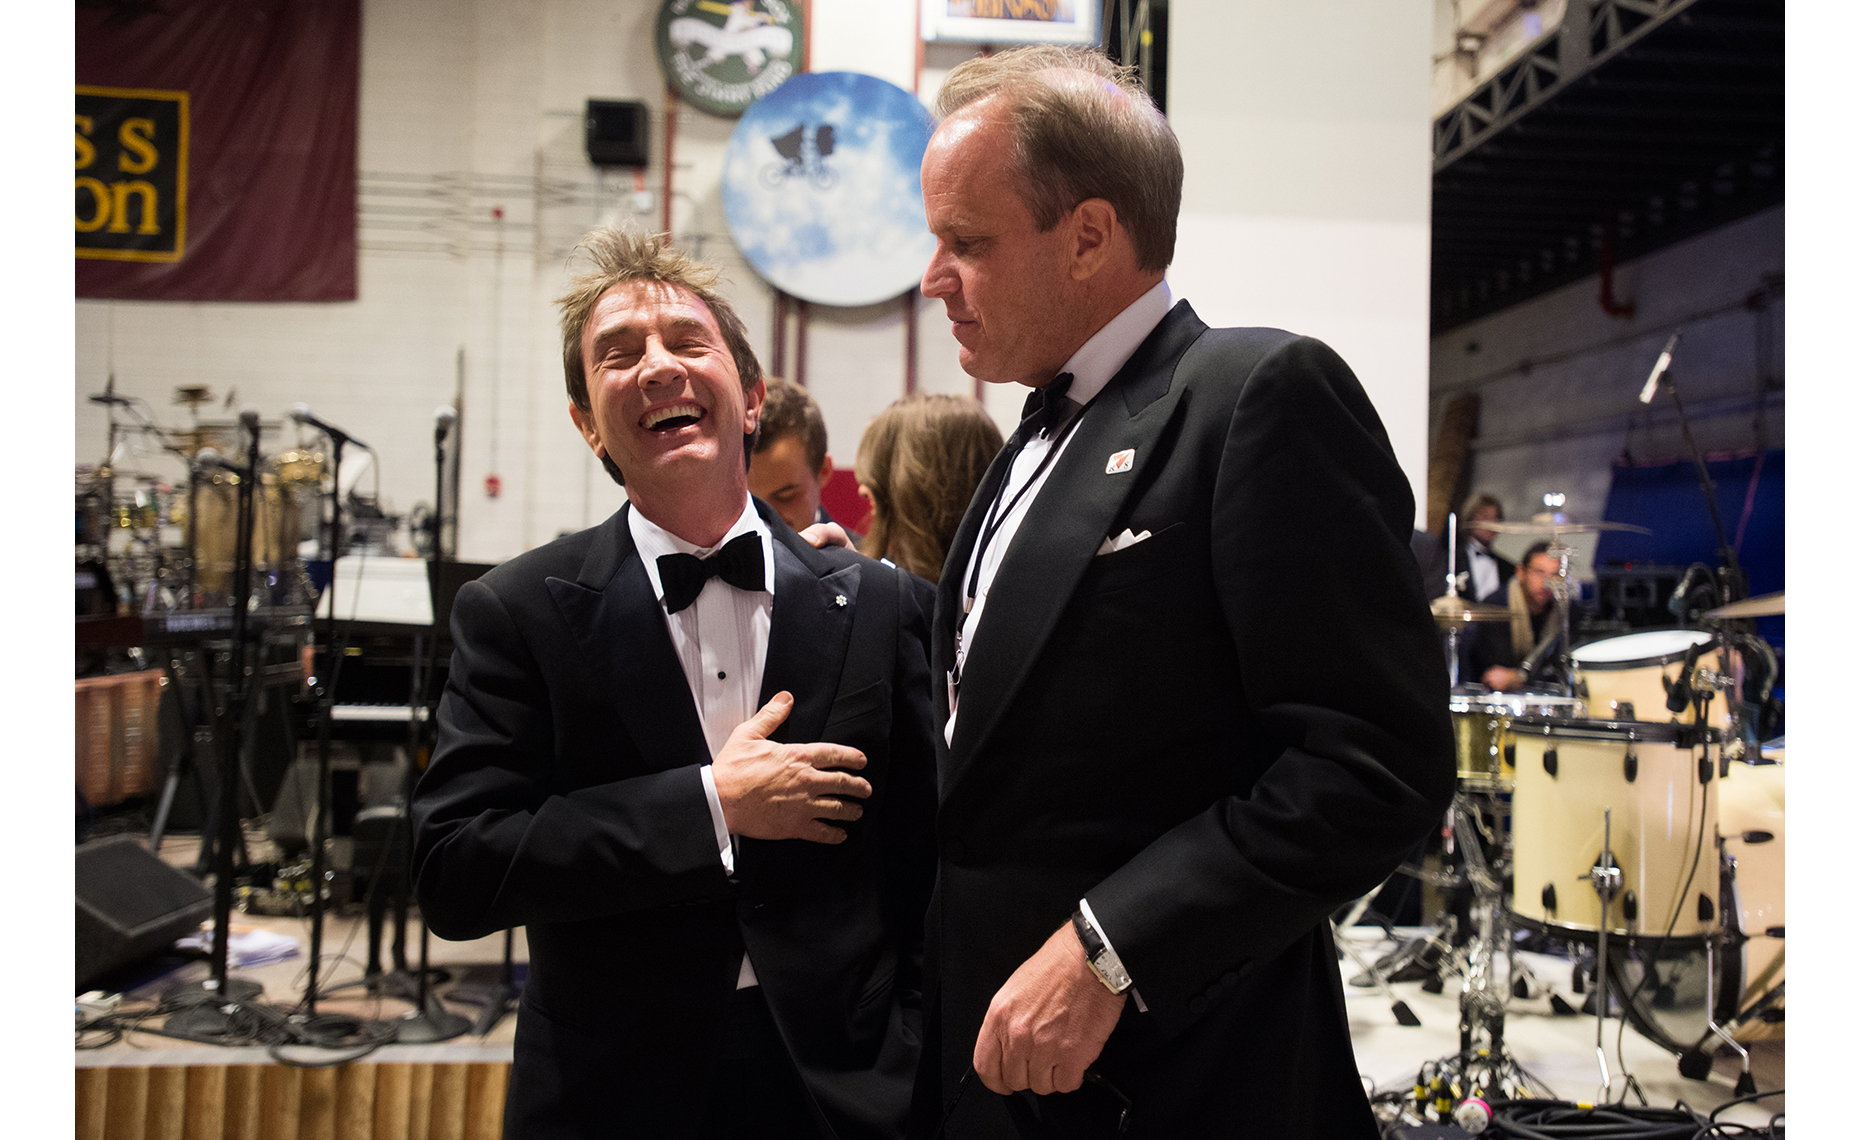 Michael Stevens and Martin Short | Washington DC Photographer Aaron Clamage